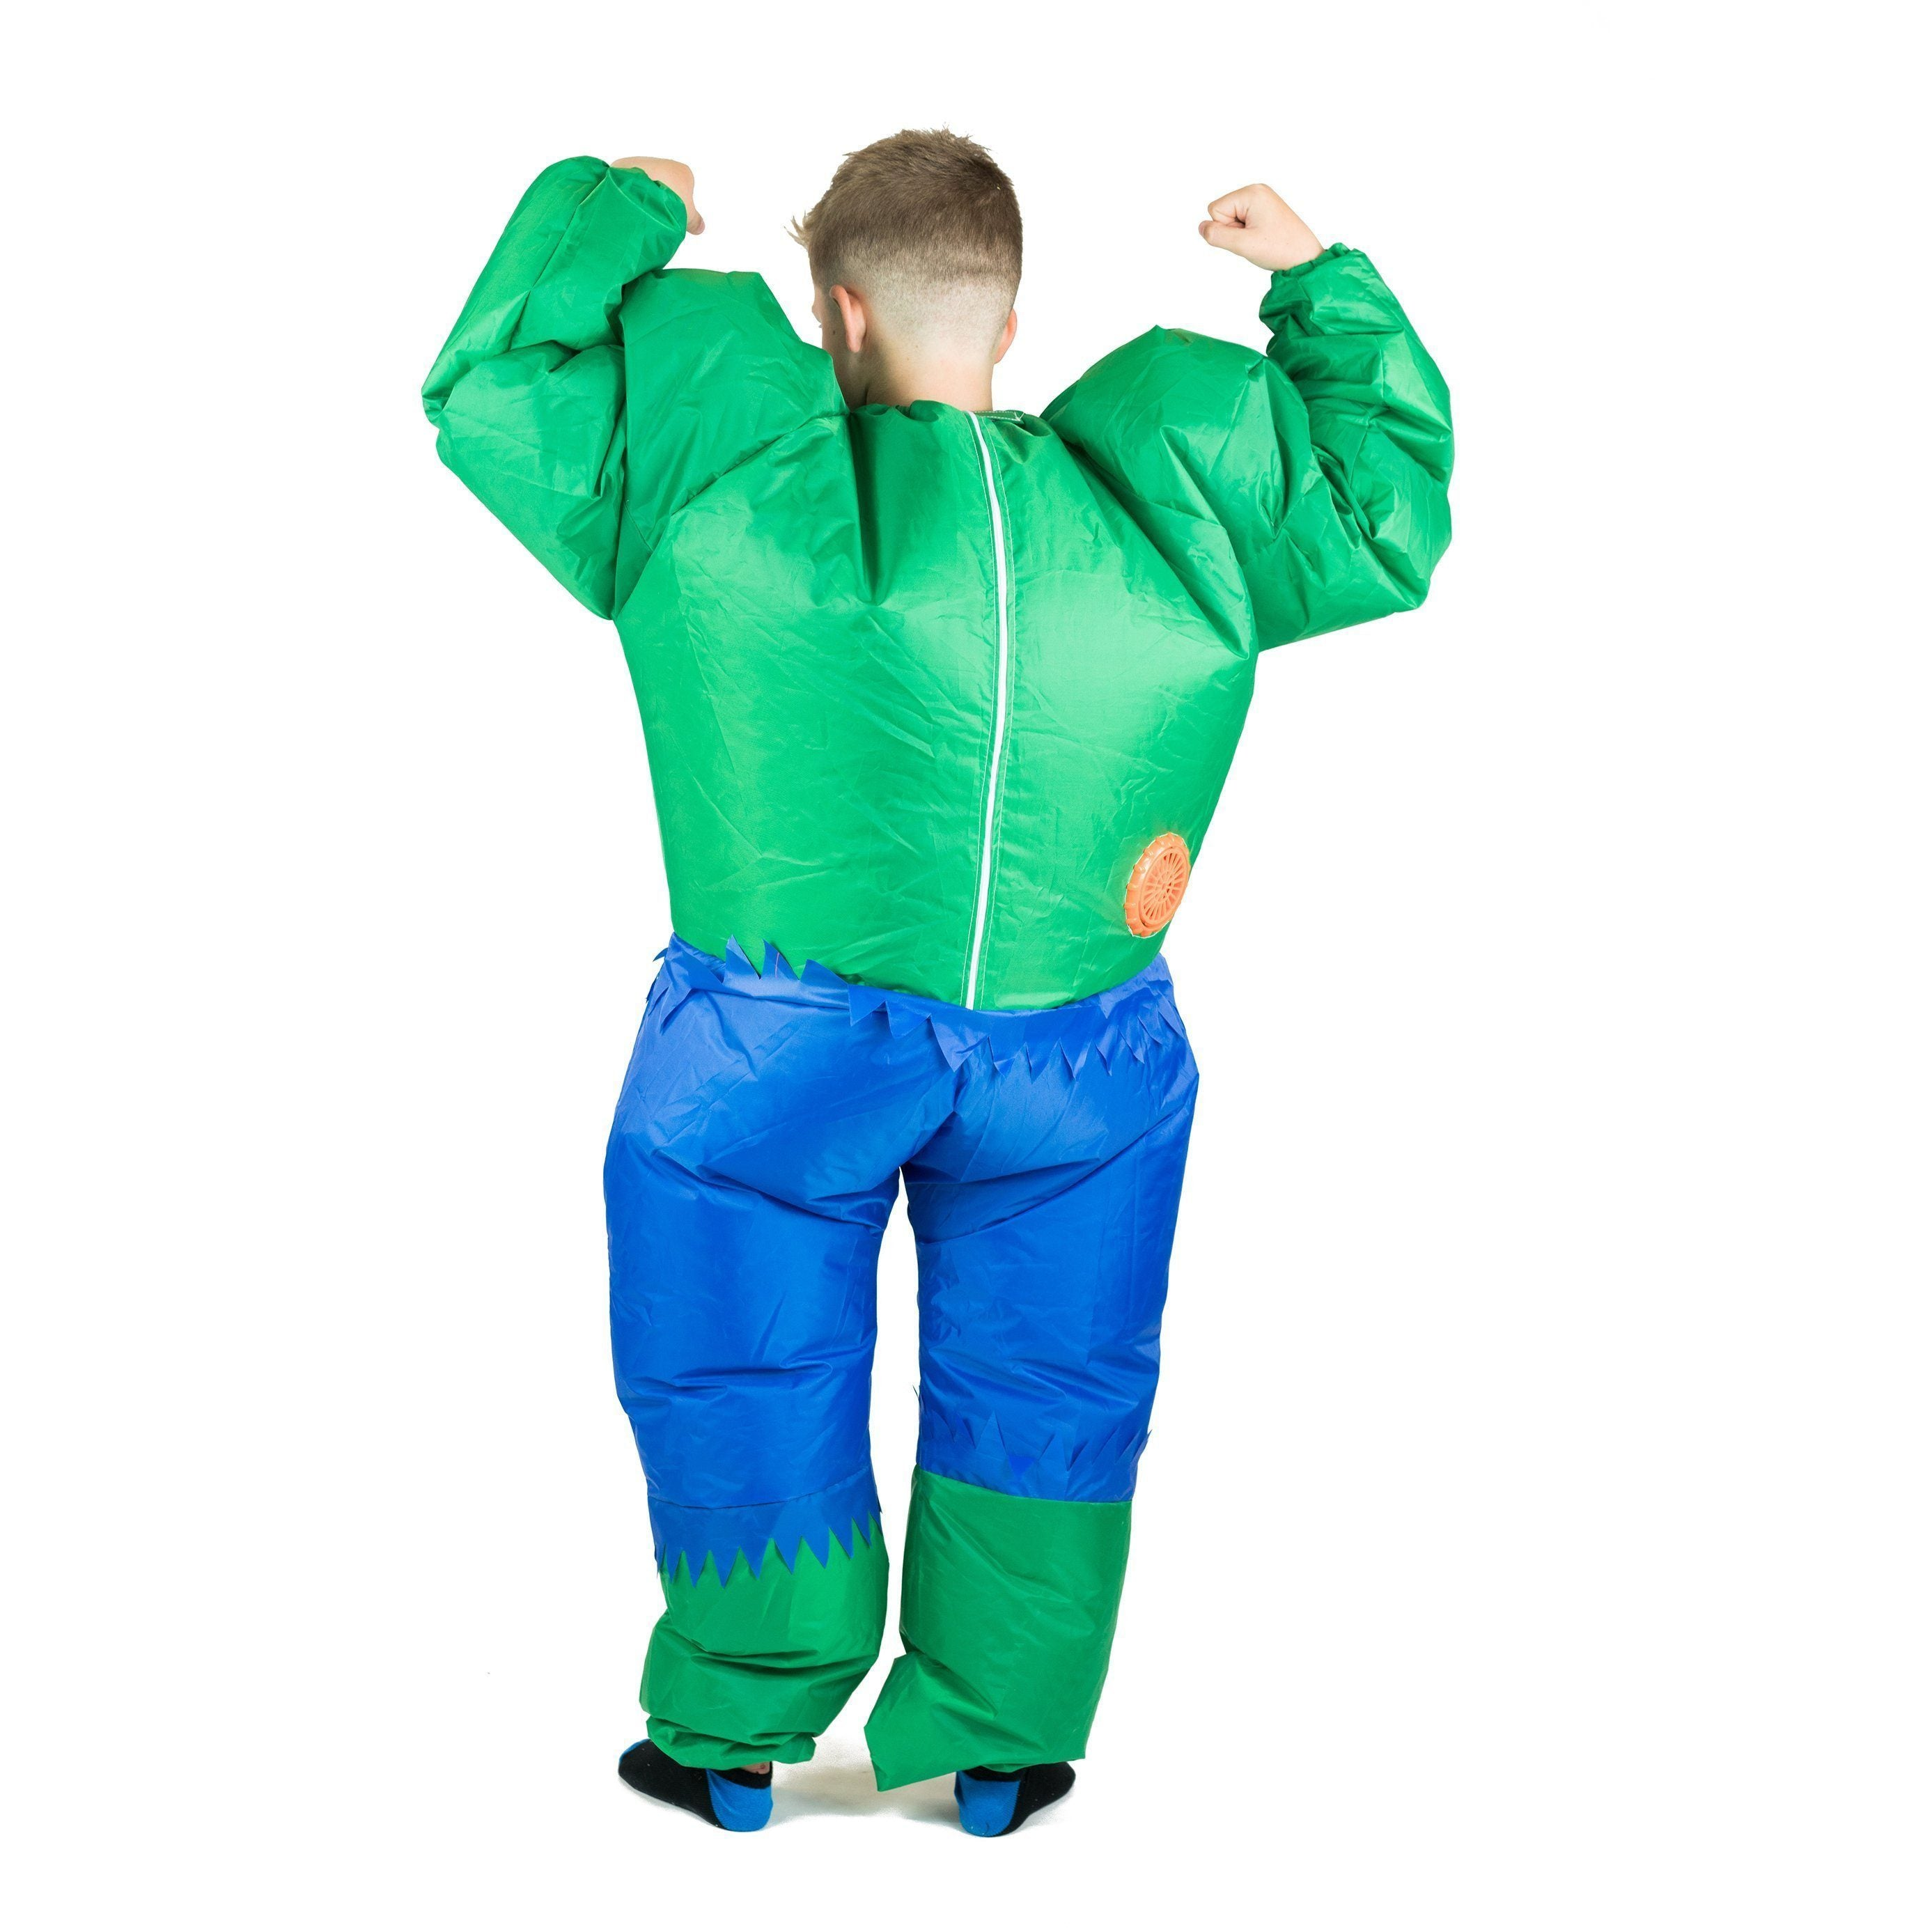 Fancy Dress - Kids Inflatable Hulk Costume